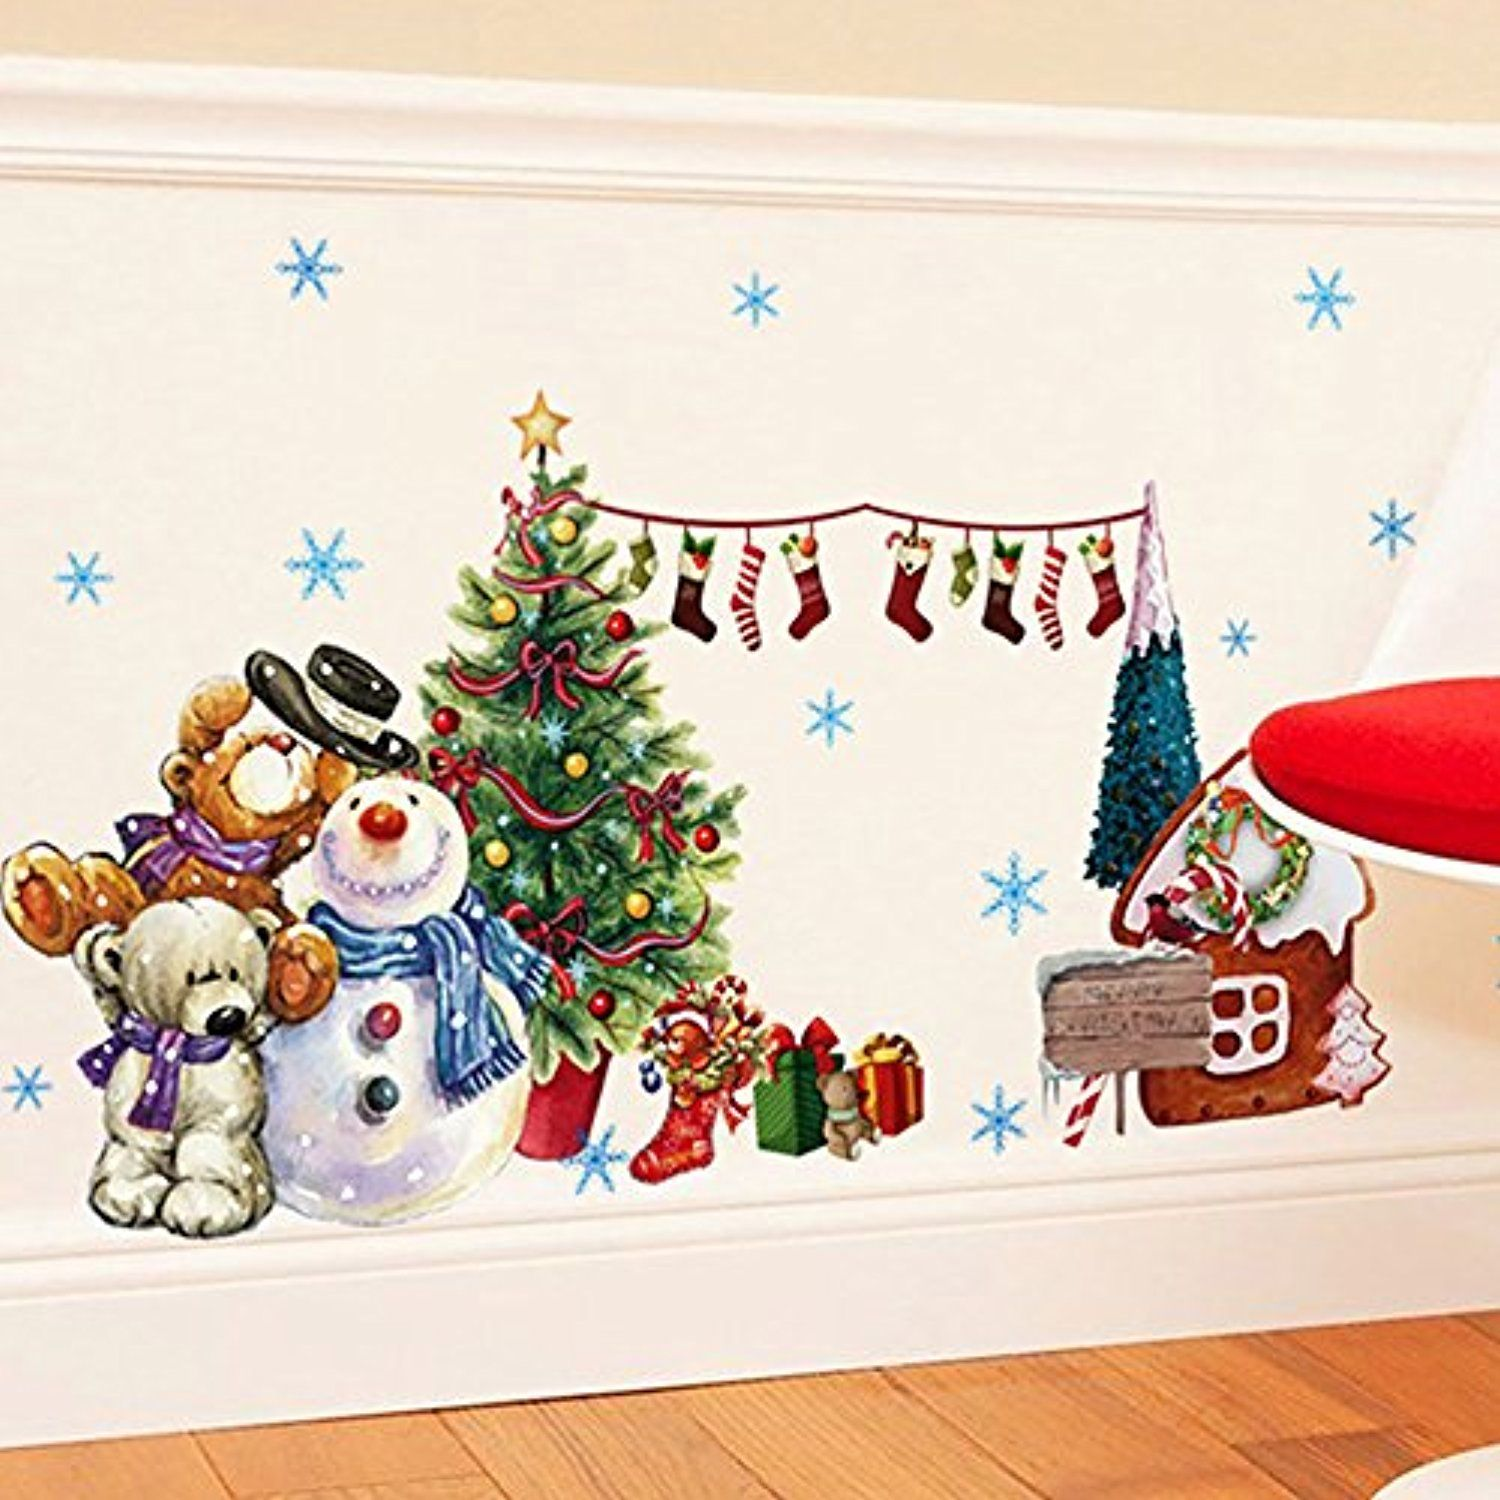 Christmas Wall Decals Removable.Merry Christmas Wall Sticker Santa Snowman Removable Vinyl